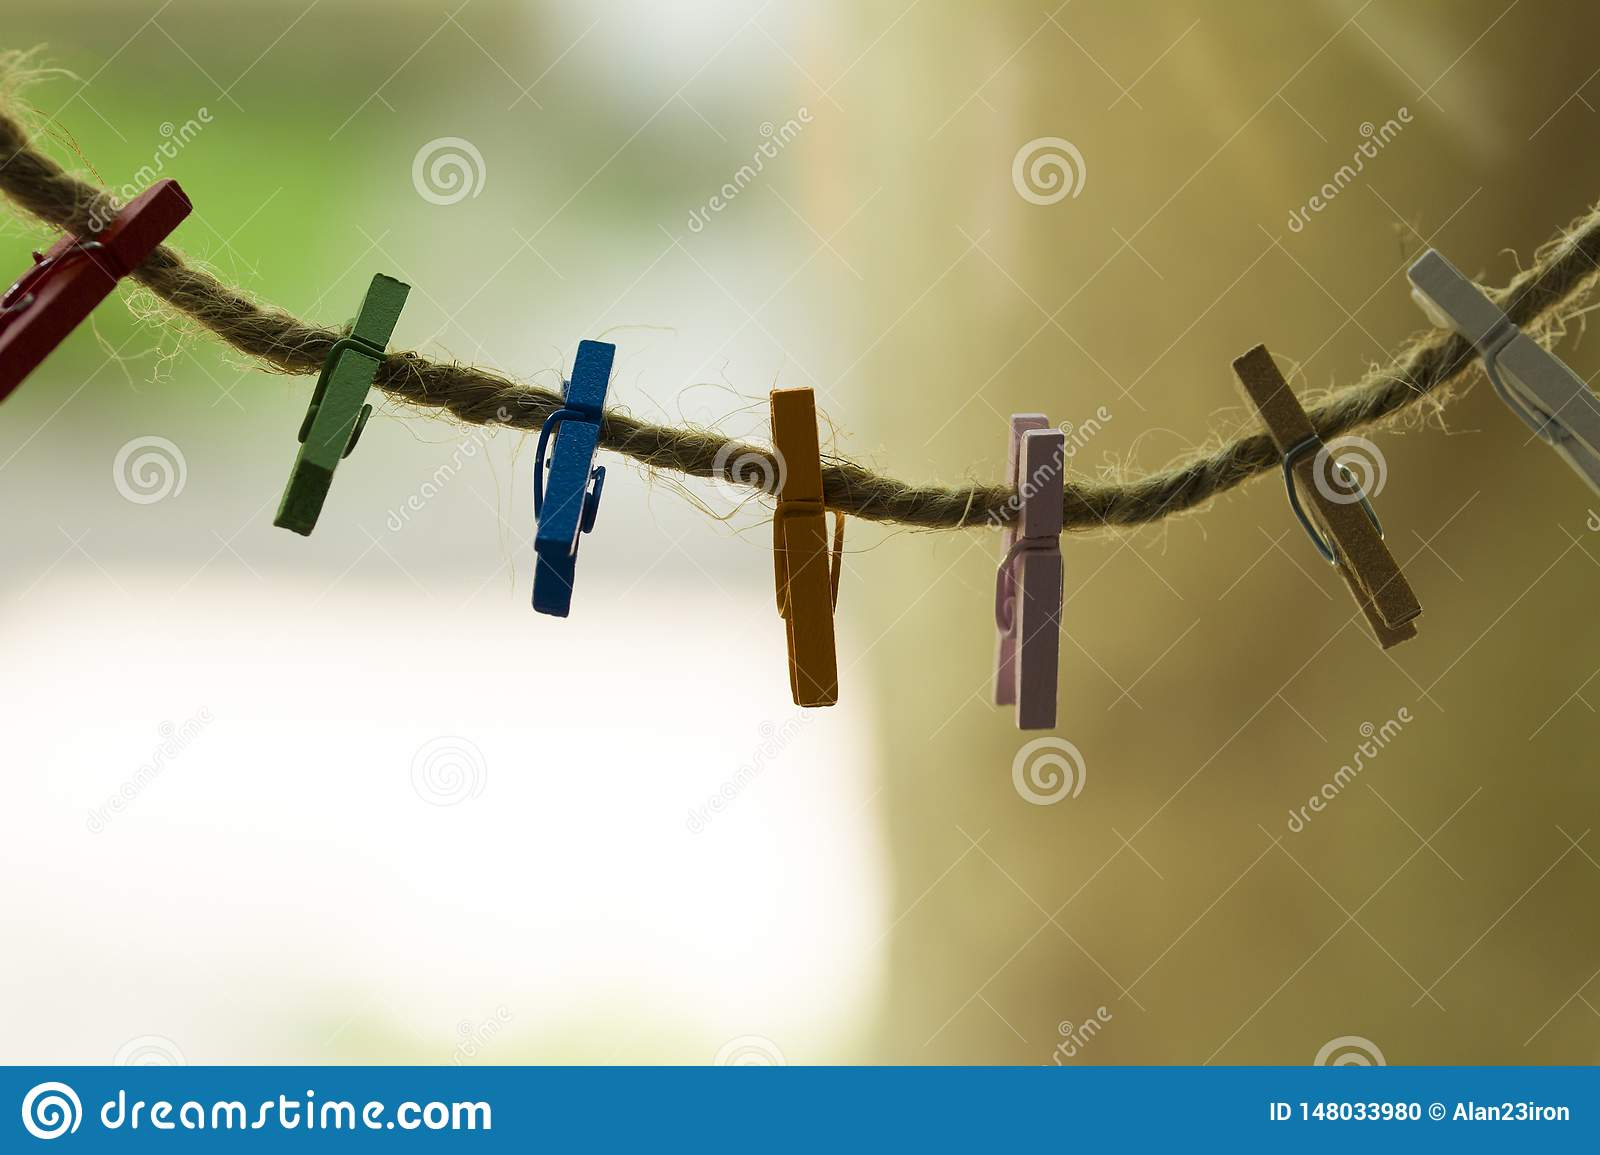 Colored wooden clothespins hanging on a wire